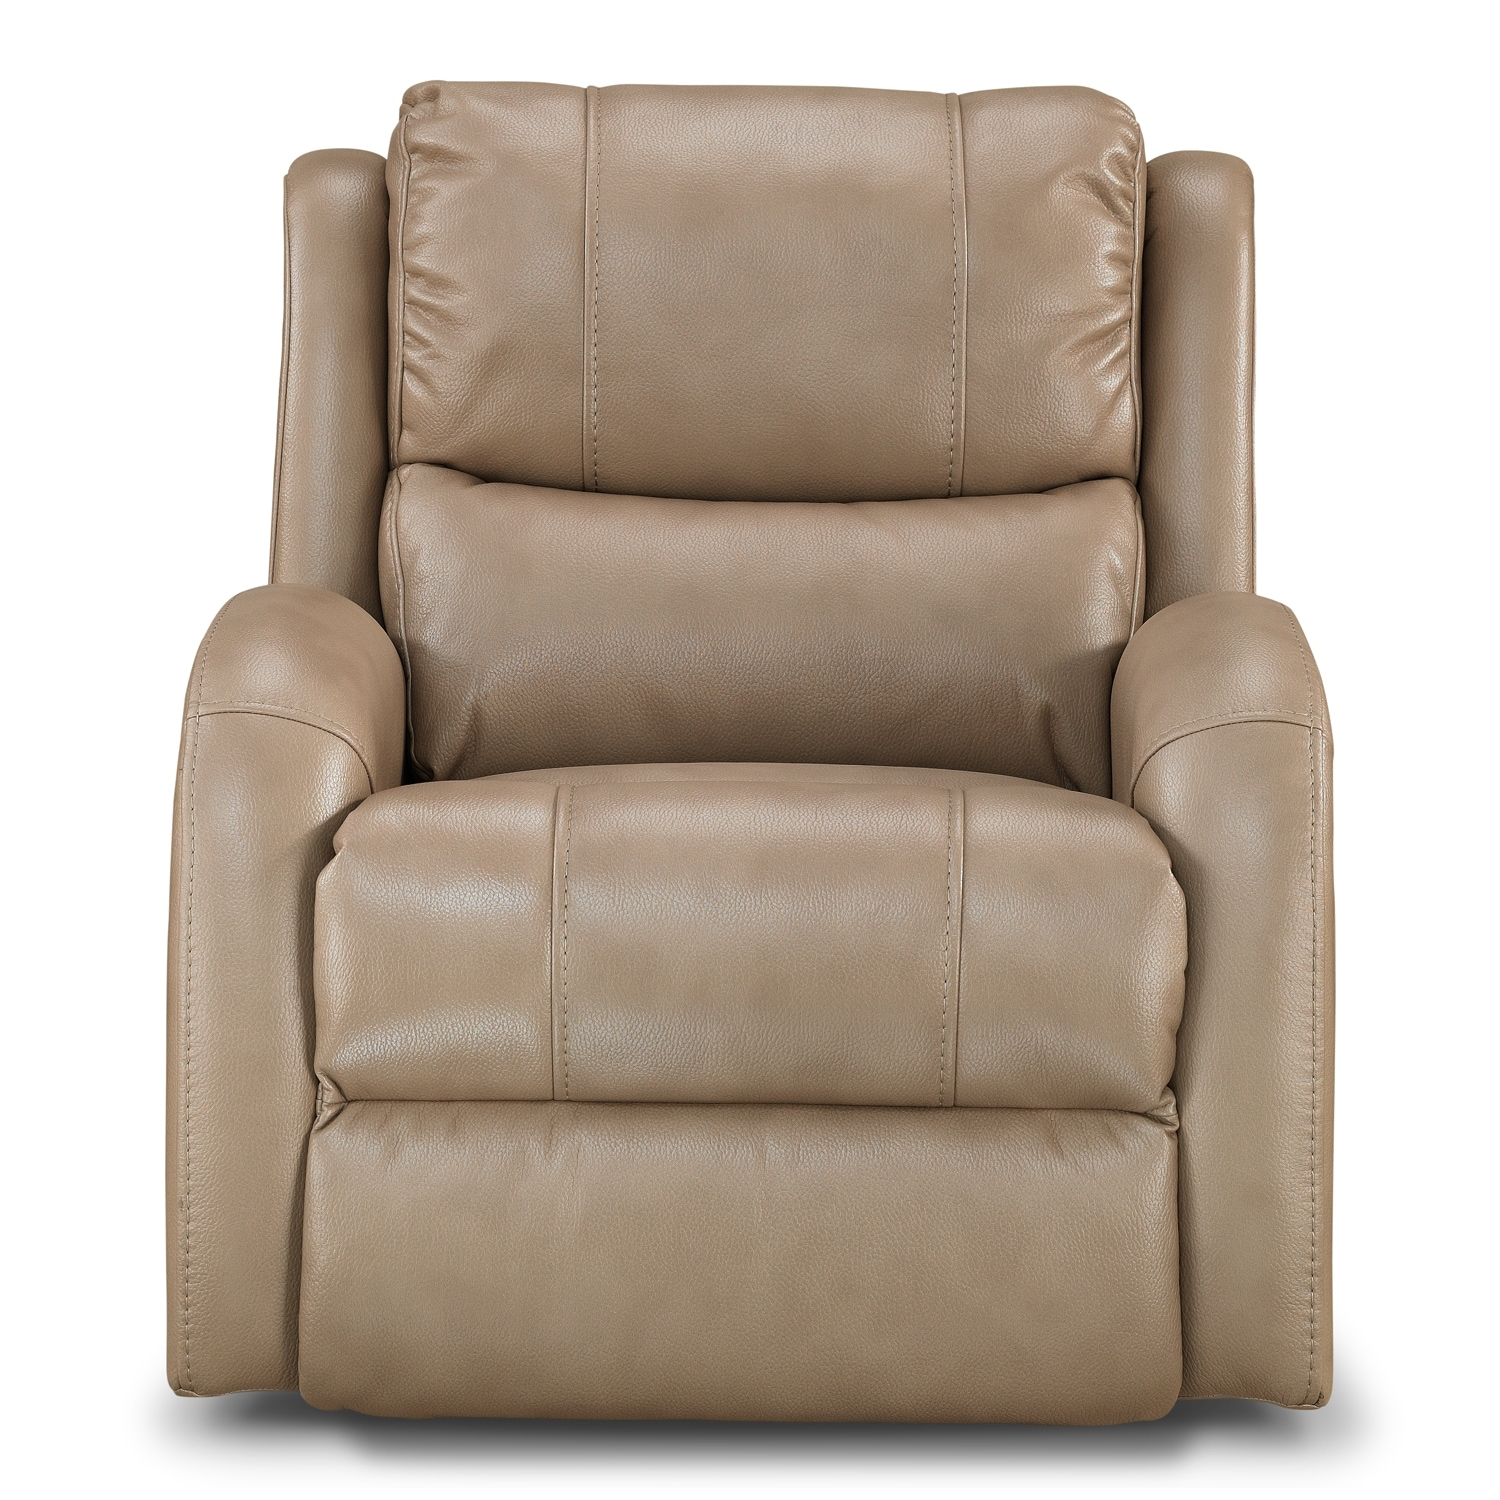 Value City Furniture Recliners: Corsica Power Recliner - Taupe